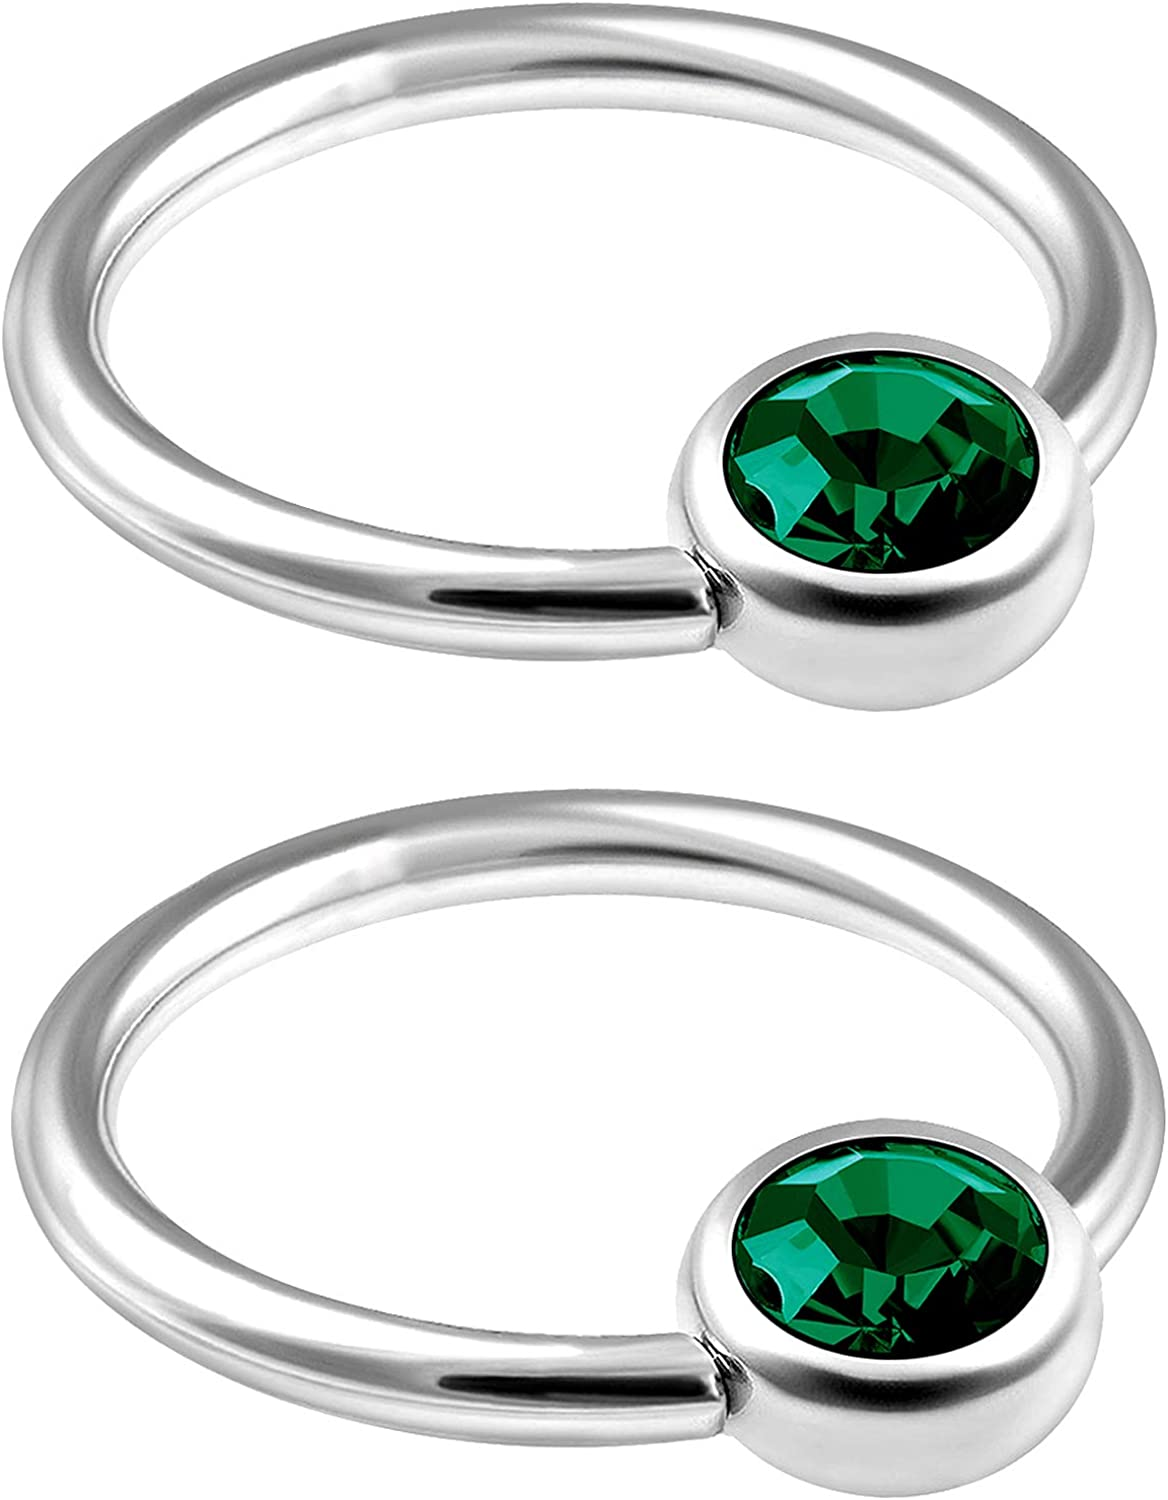 MATIGA 2Pcs Surgical Steel 16g Captive Ring Piercing Jewelry Tragus Nose Septum Eyebrow Cartilage 4mm Flat Crystal Ball More Choices